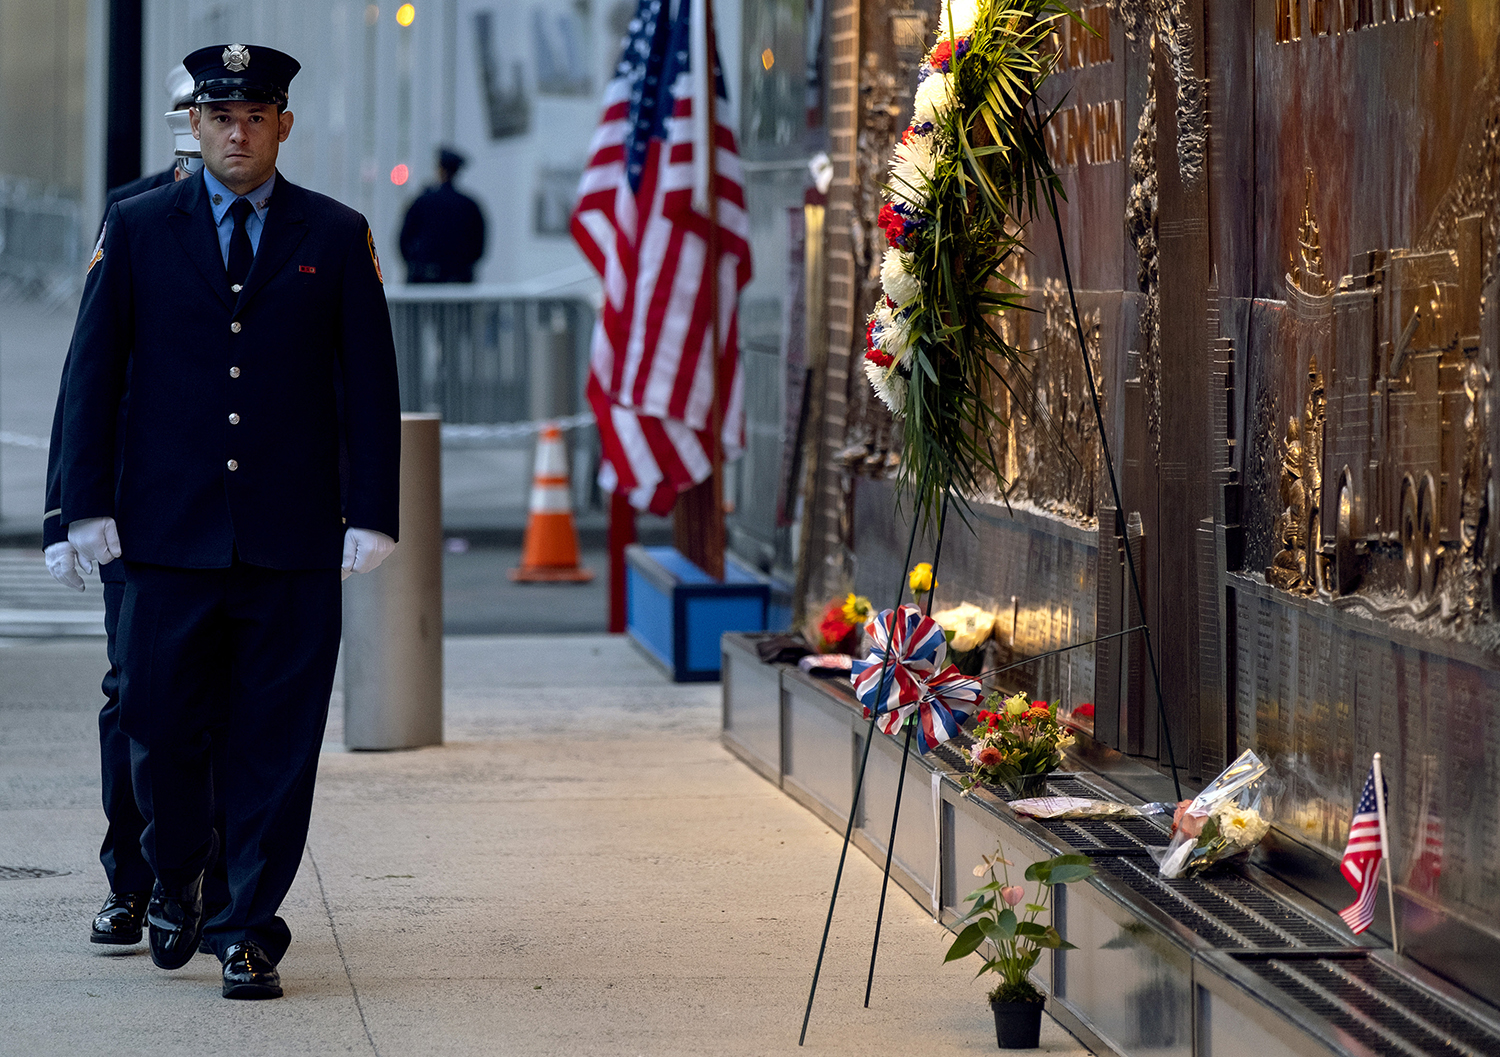 New York City firefighters take a position in front of a memorial on the side of a firehouse adjacent to One World Trade Center and the 9/11 Memorial site during ceremonies commemorating the 18th anniversary of the 9/11 terrorist attacks in New York on Wednesday, Sept. 11, 2019. (Craig Ruttle/AP)